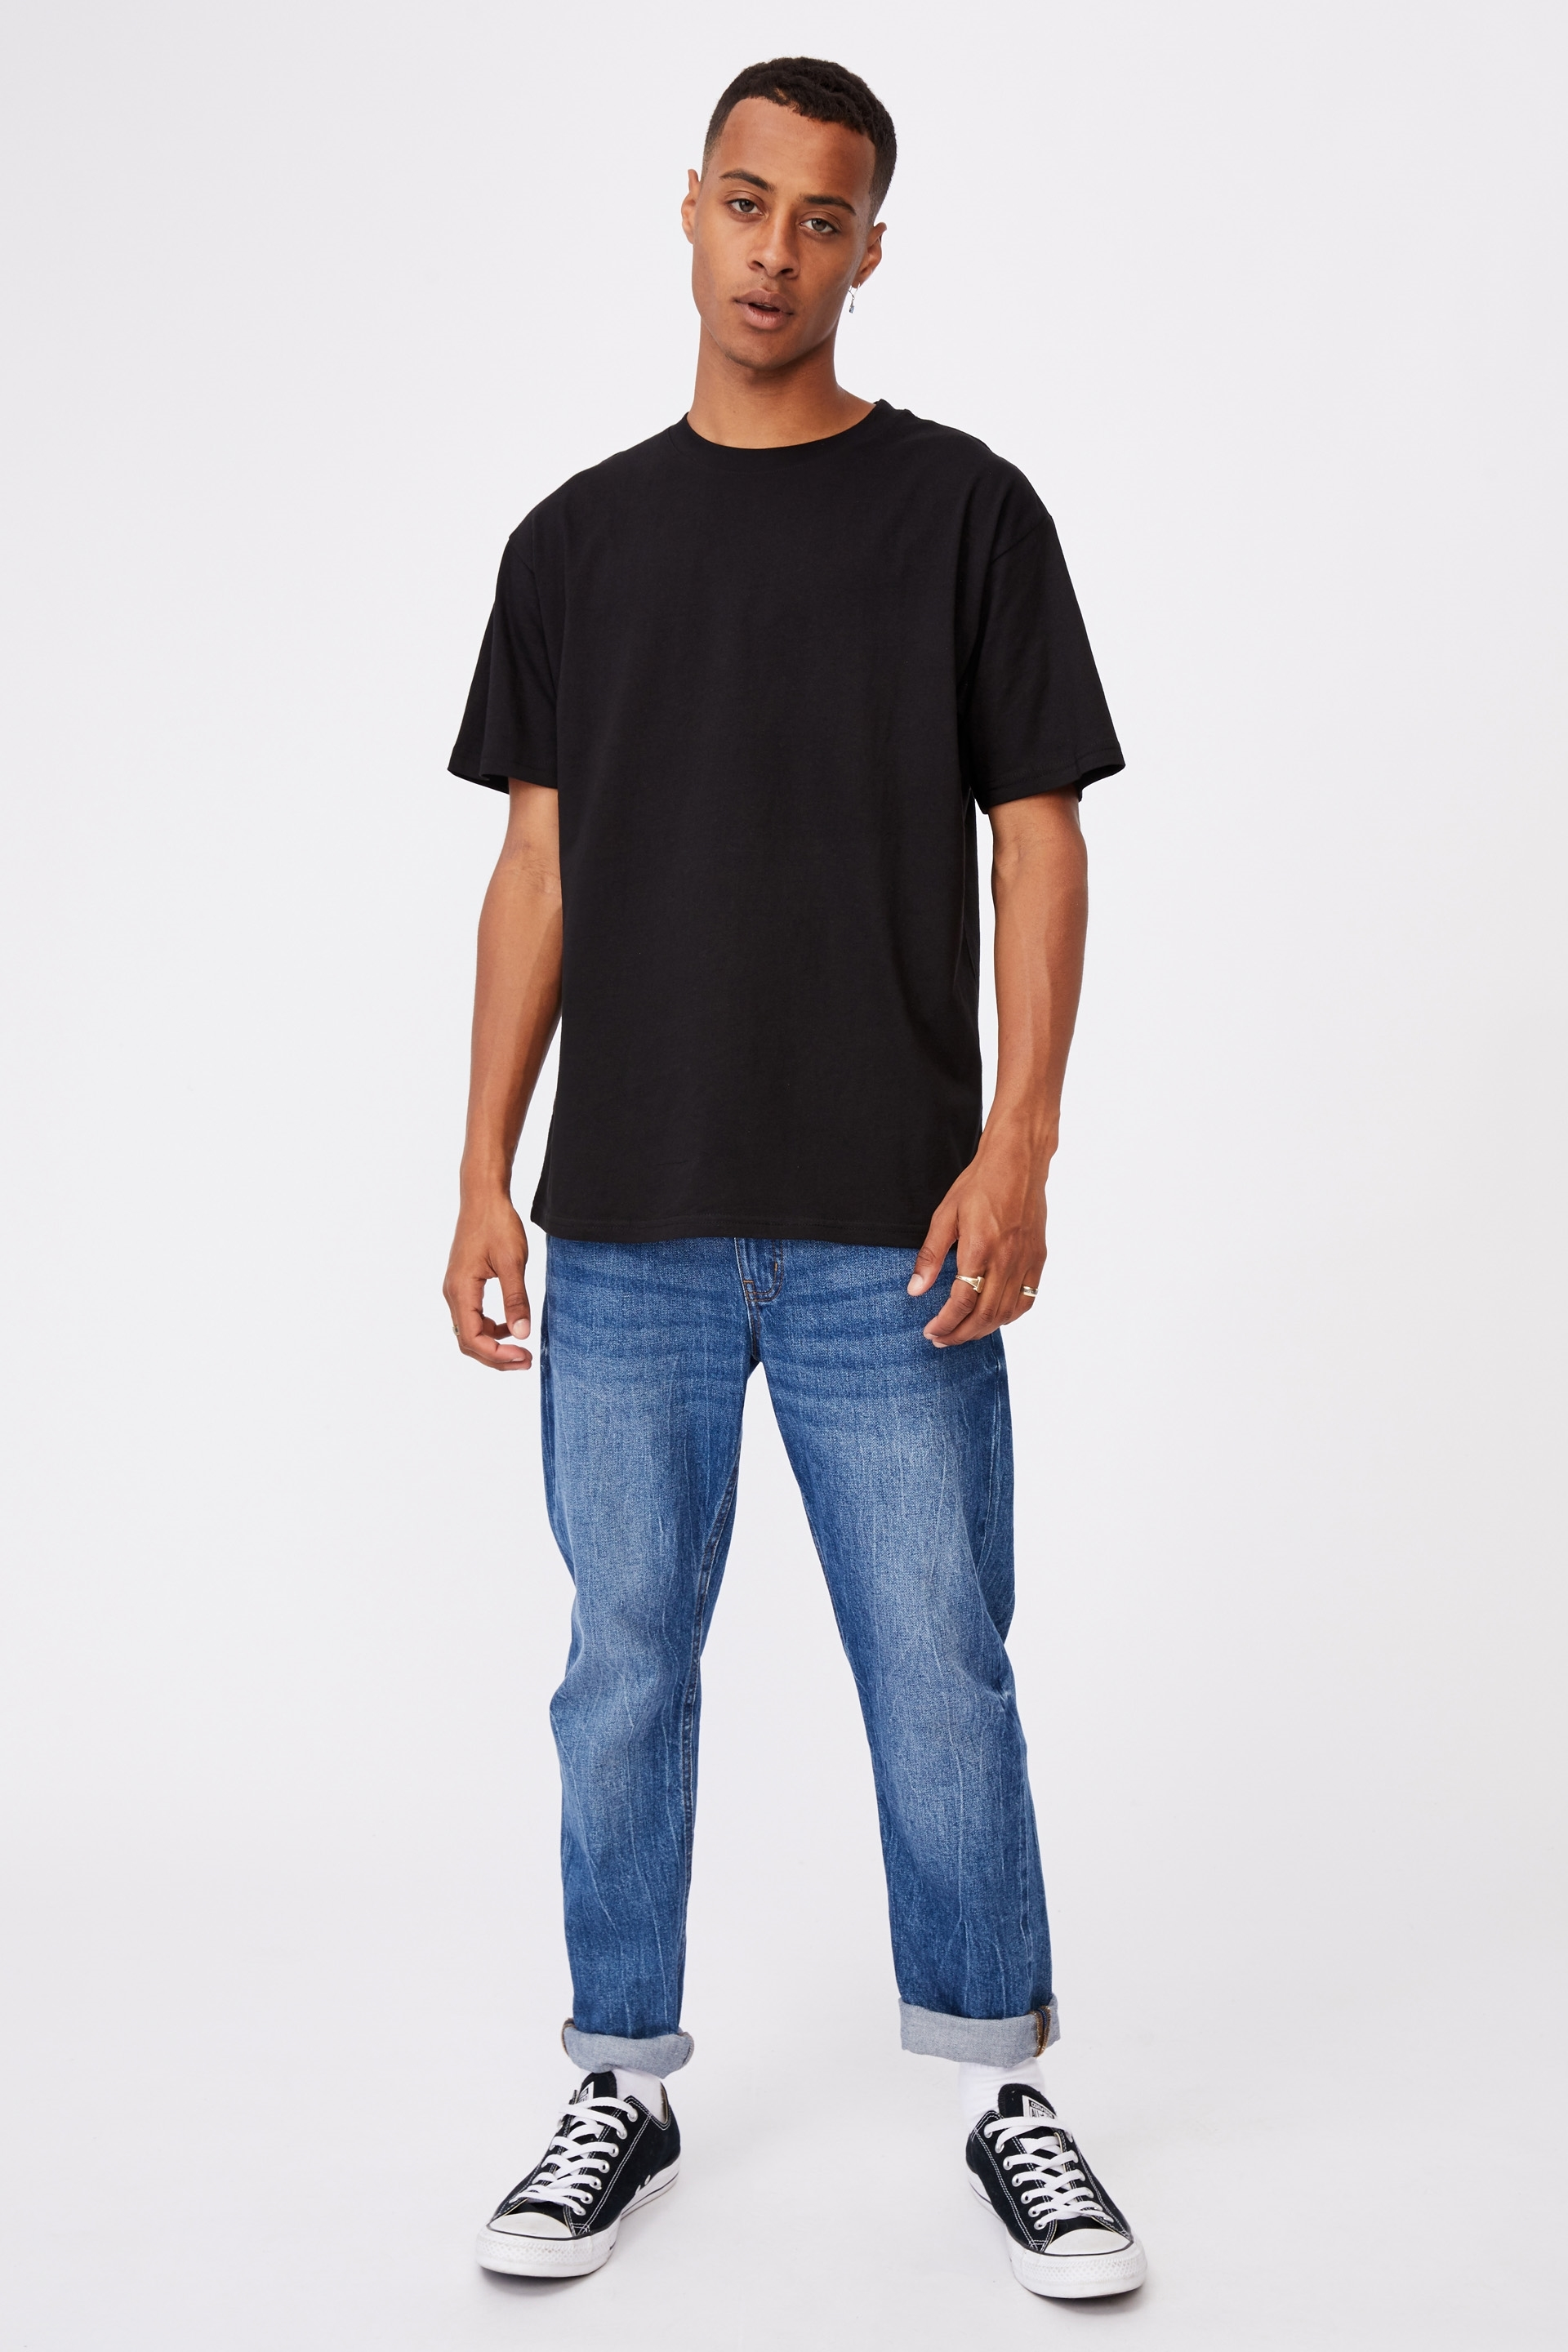 afc22b130aef4 Essential Skate Tee | Men's Fashion | Cotton On